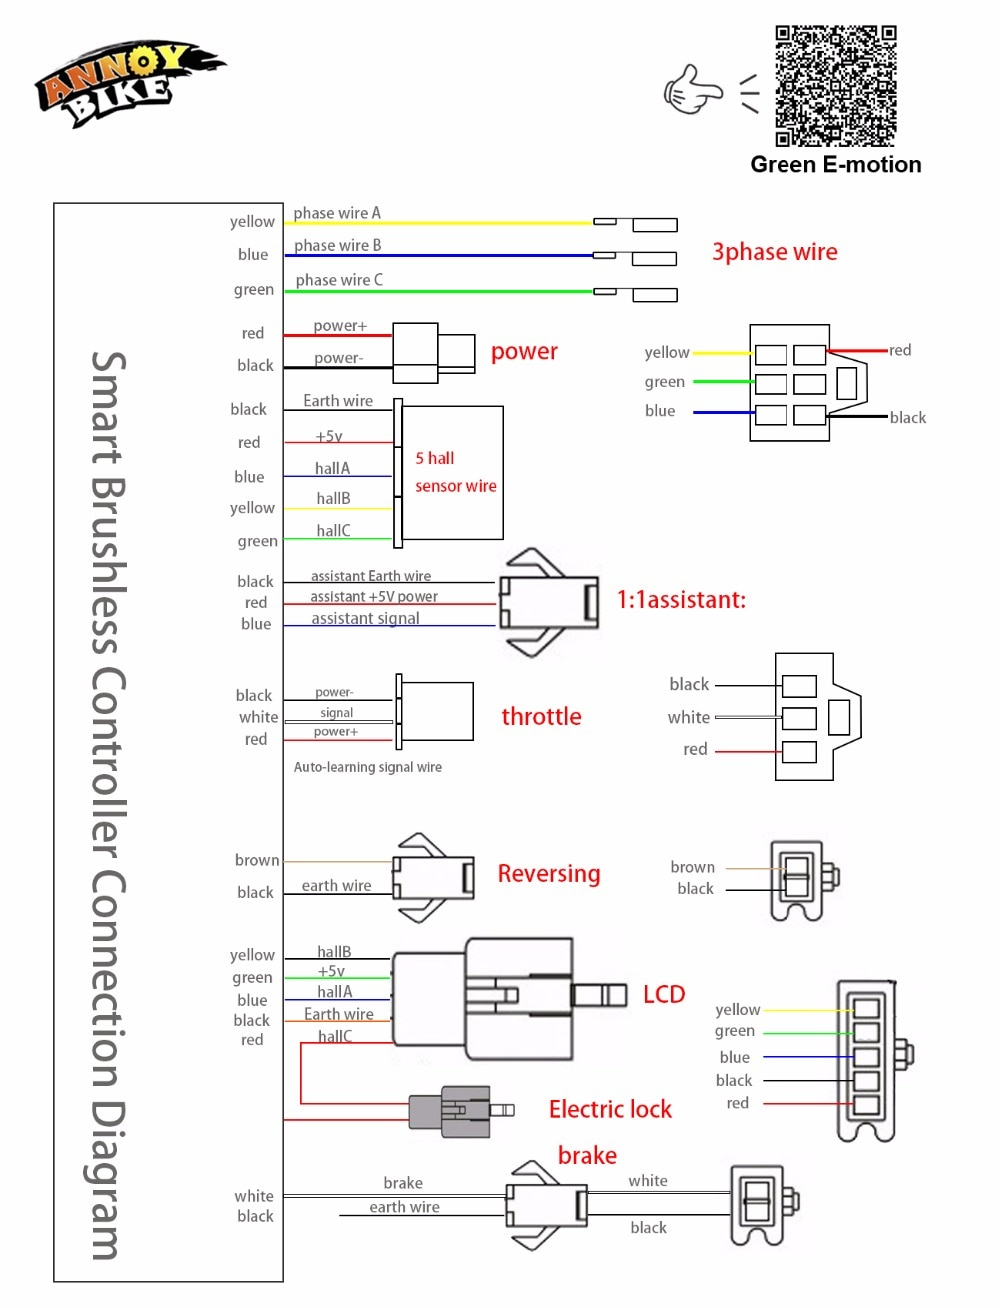 E Bike Controller Wiring Diagram Pdf from wholefoodsonabudget.com